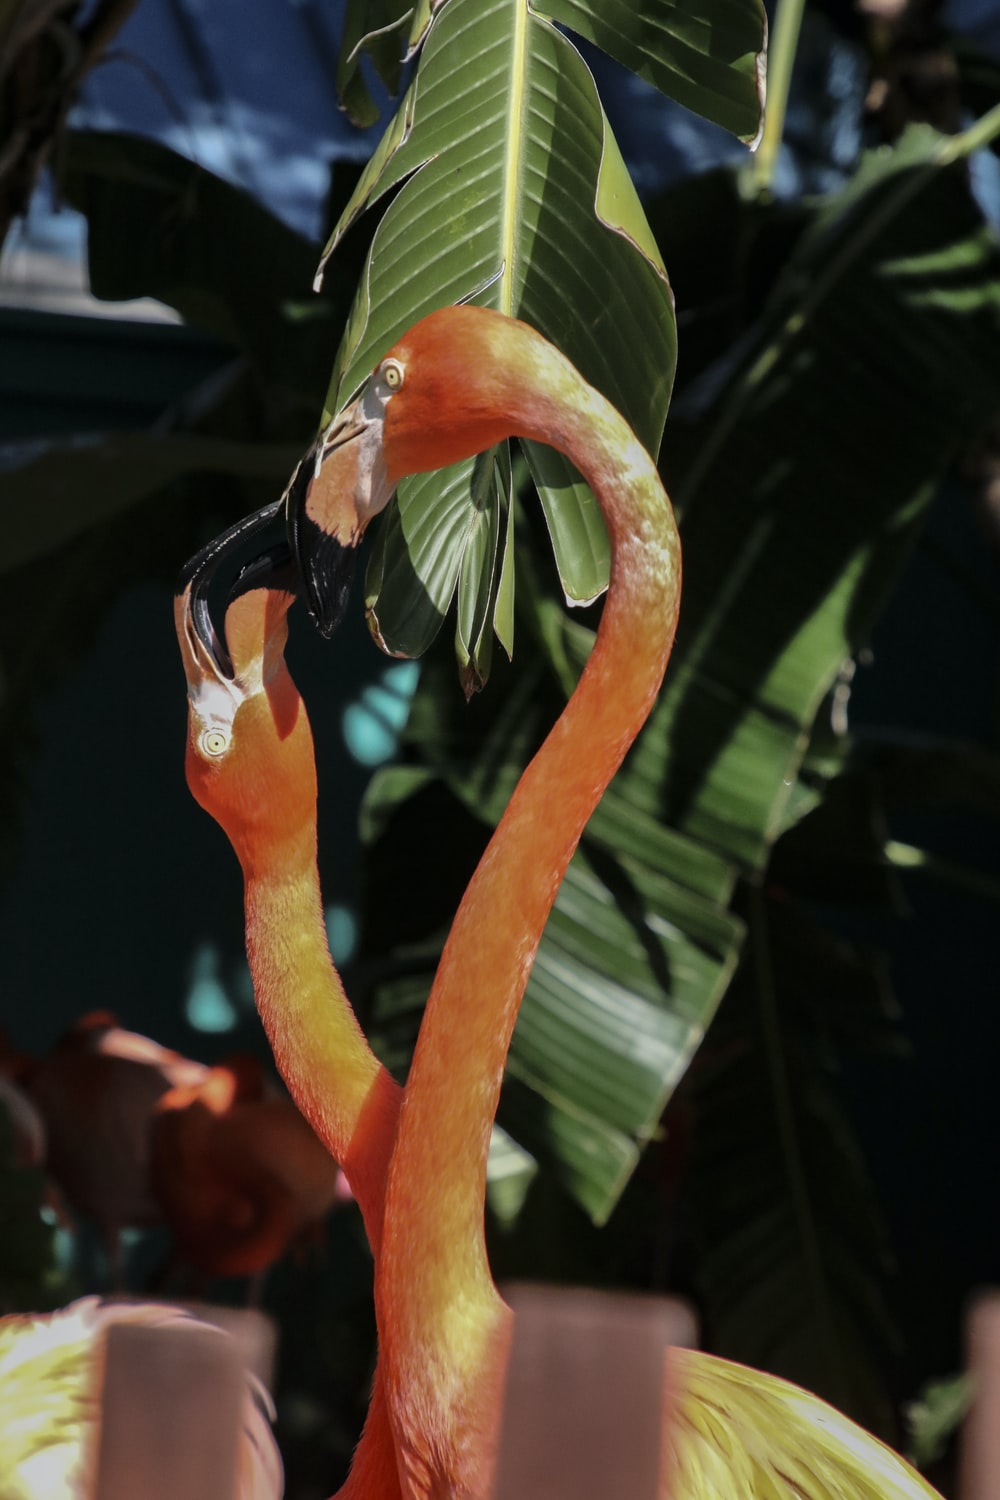 orange flamingo in close up photography